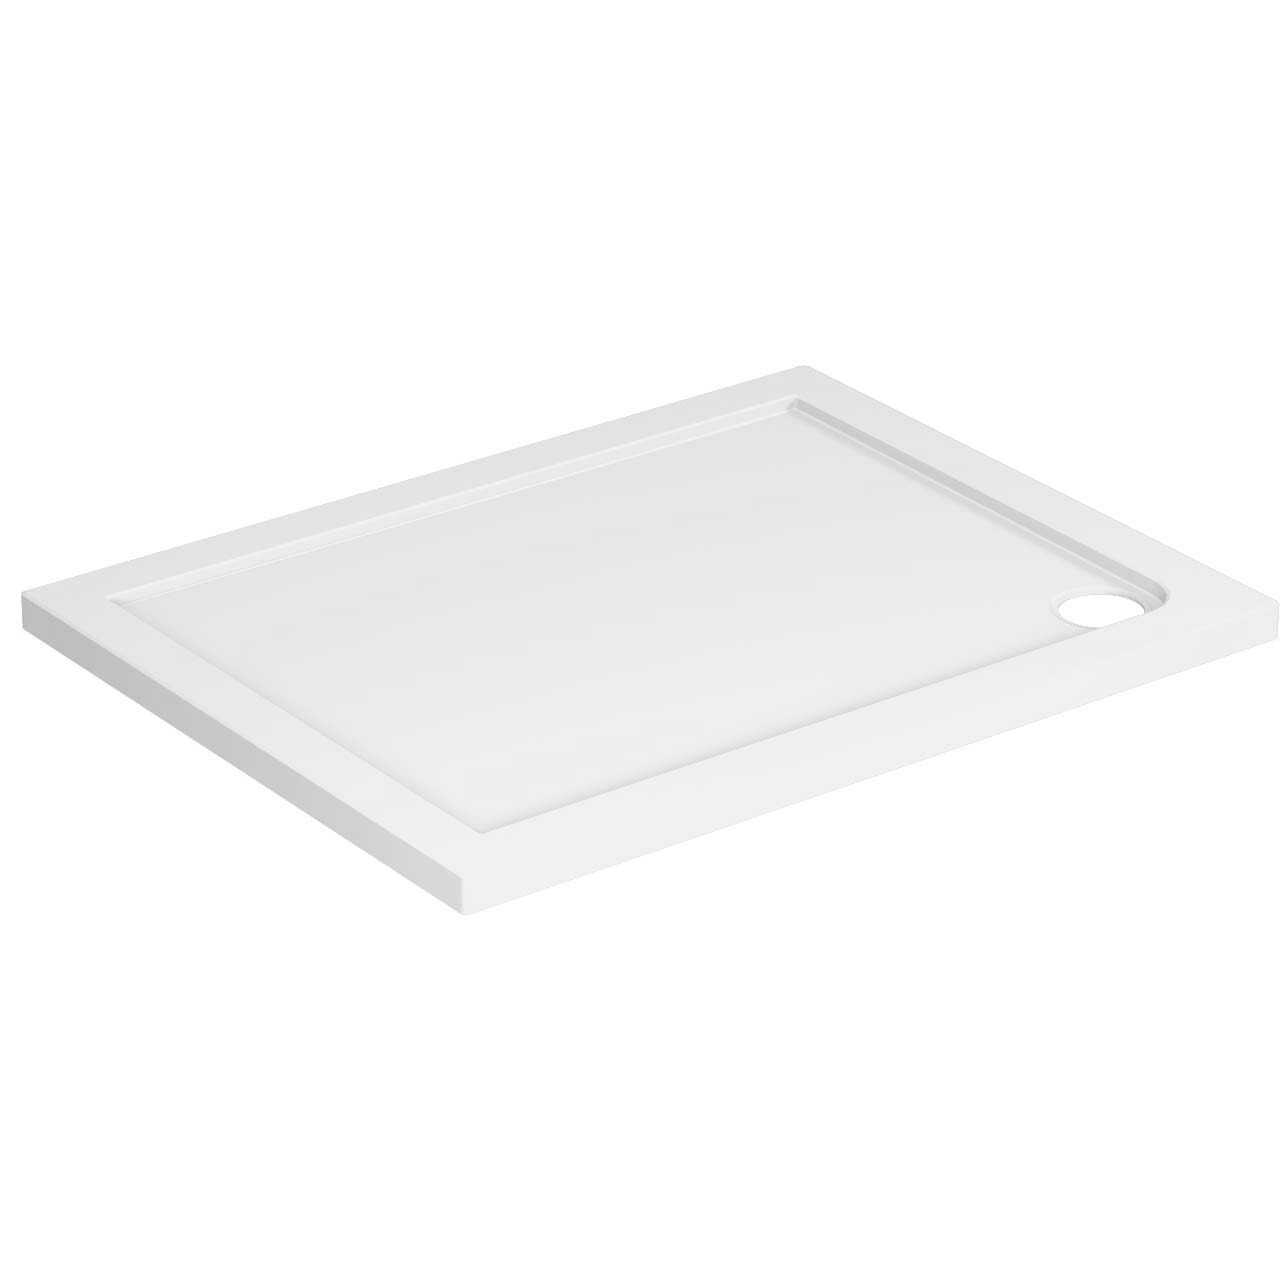 40mm Pearlstone 1000 x 760 Rectangular Shower Tray